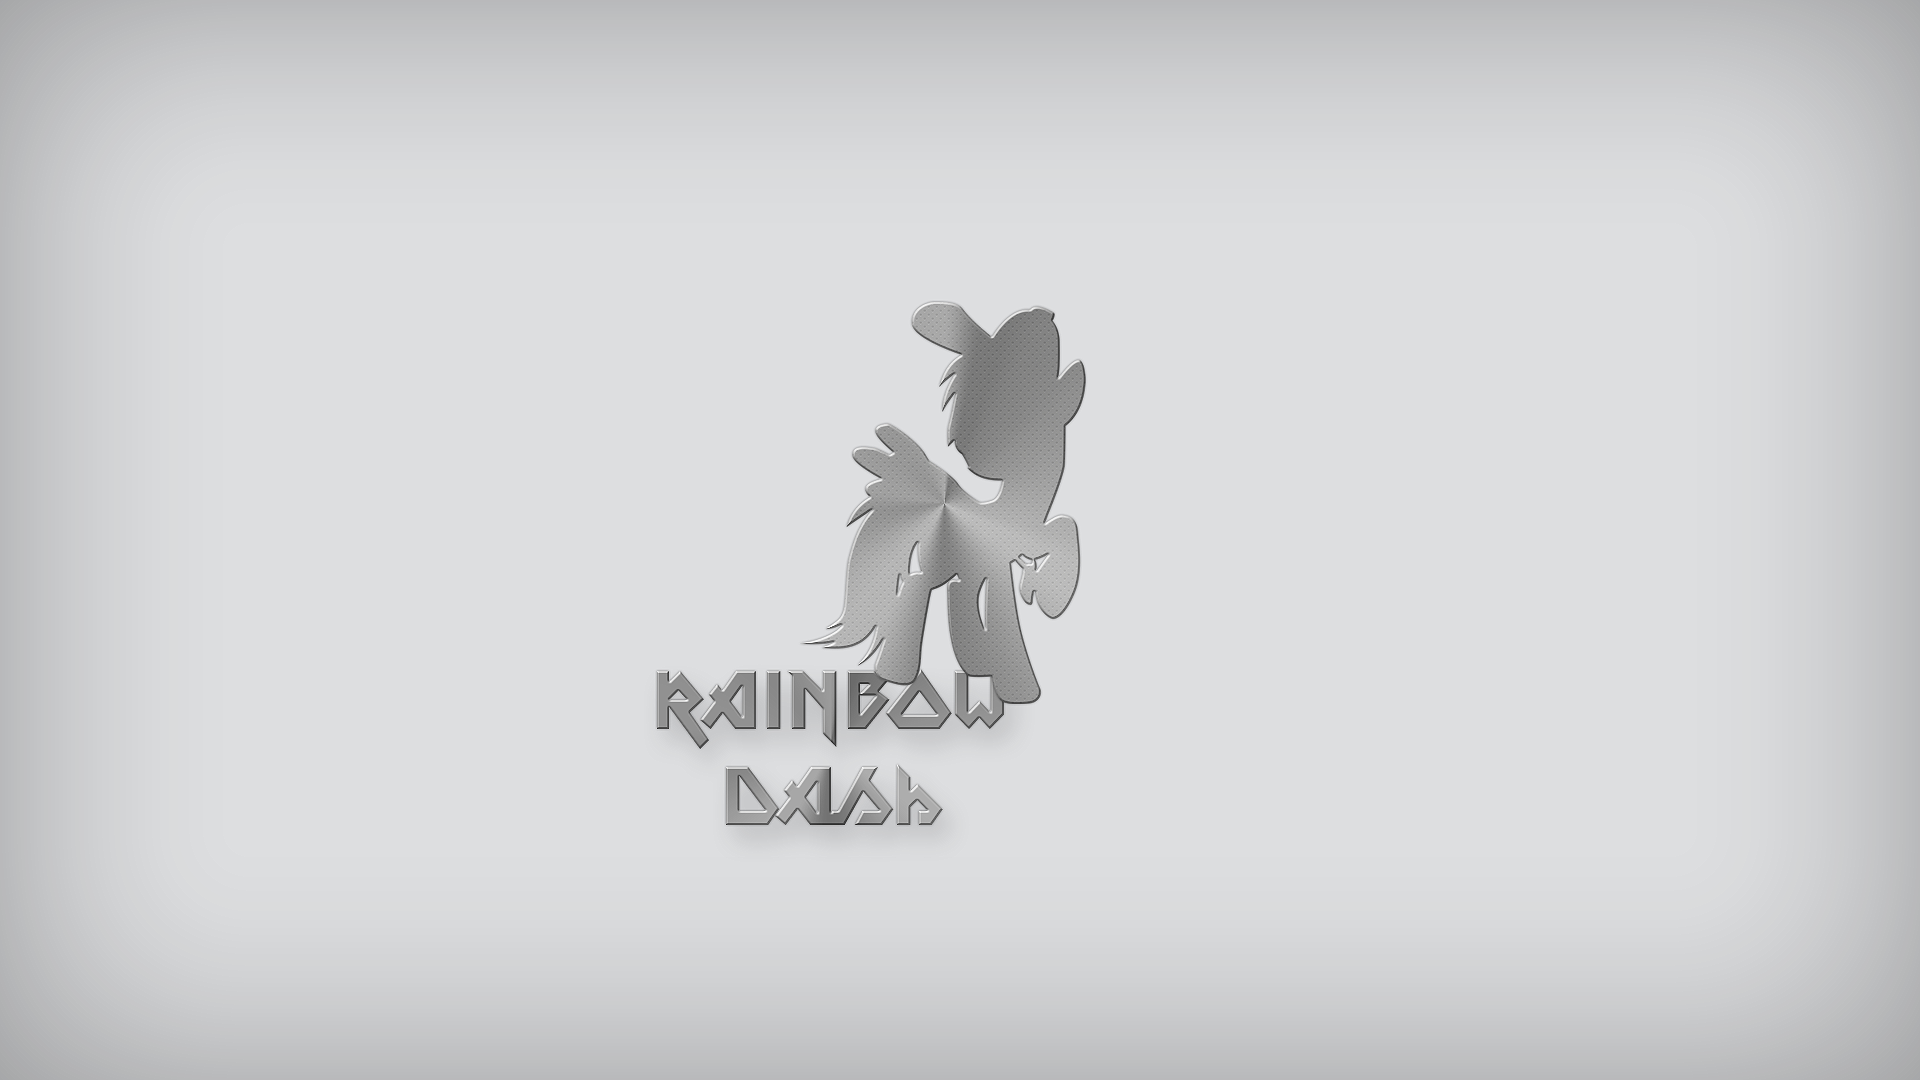 Rainbow Dash - Brushed Metal Type 3 by EphemeralBlue and Somepony